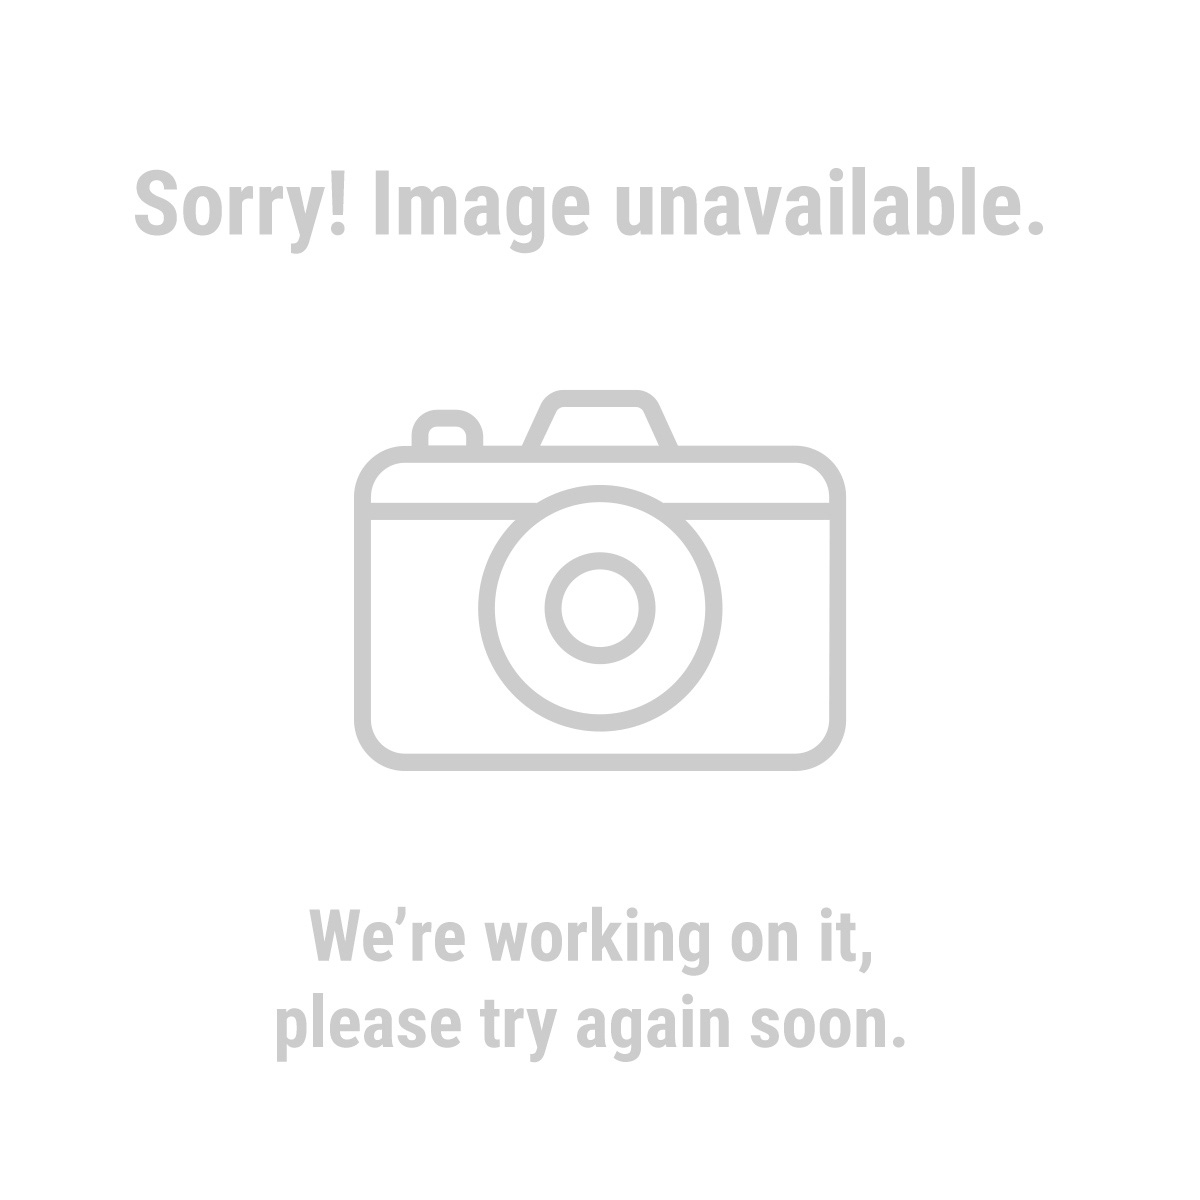 BADLAND WINCHES 68143 9000 lb. Off-Road Vehicle Winch with Automatic Load-Holding Brake